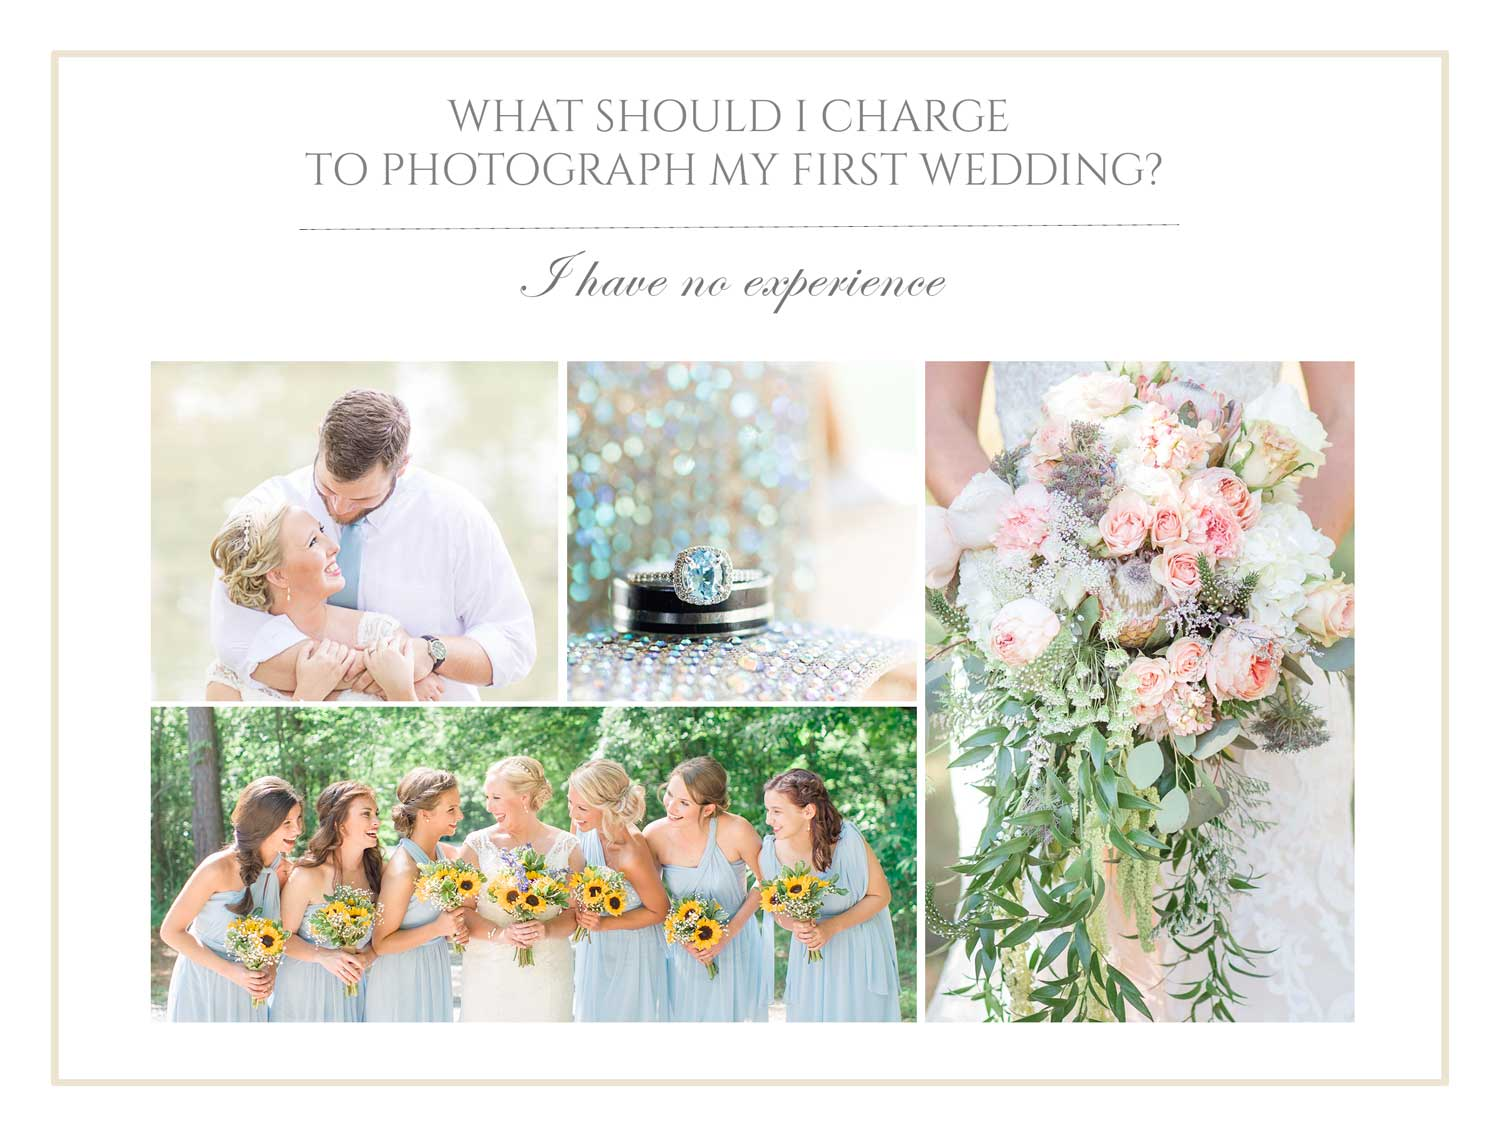 What should I charge to photograph my first wedding?